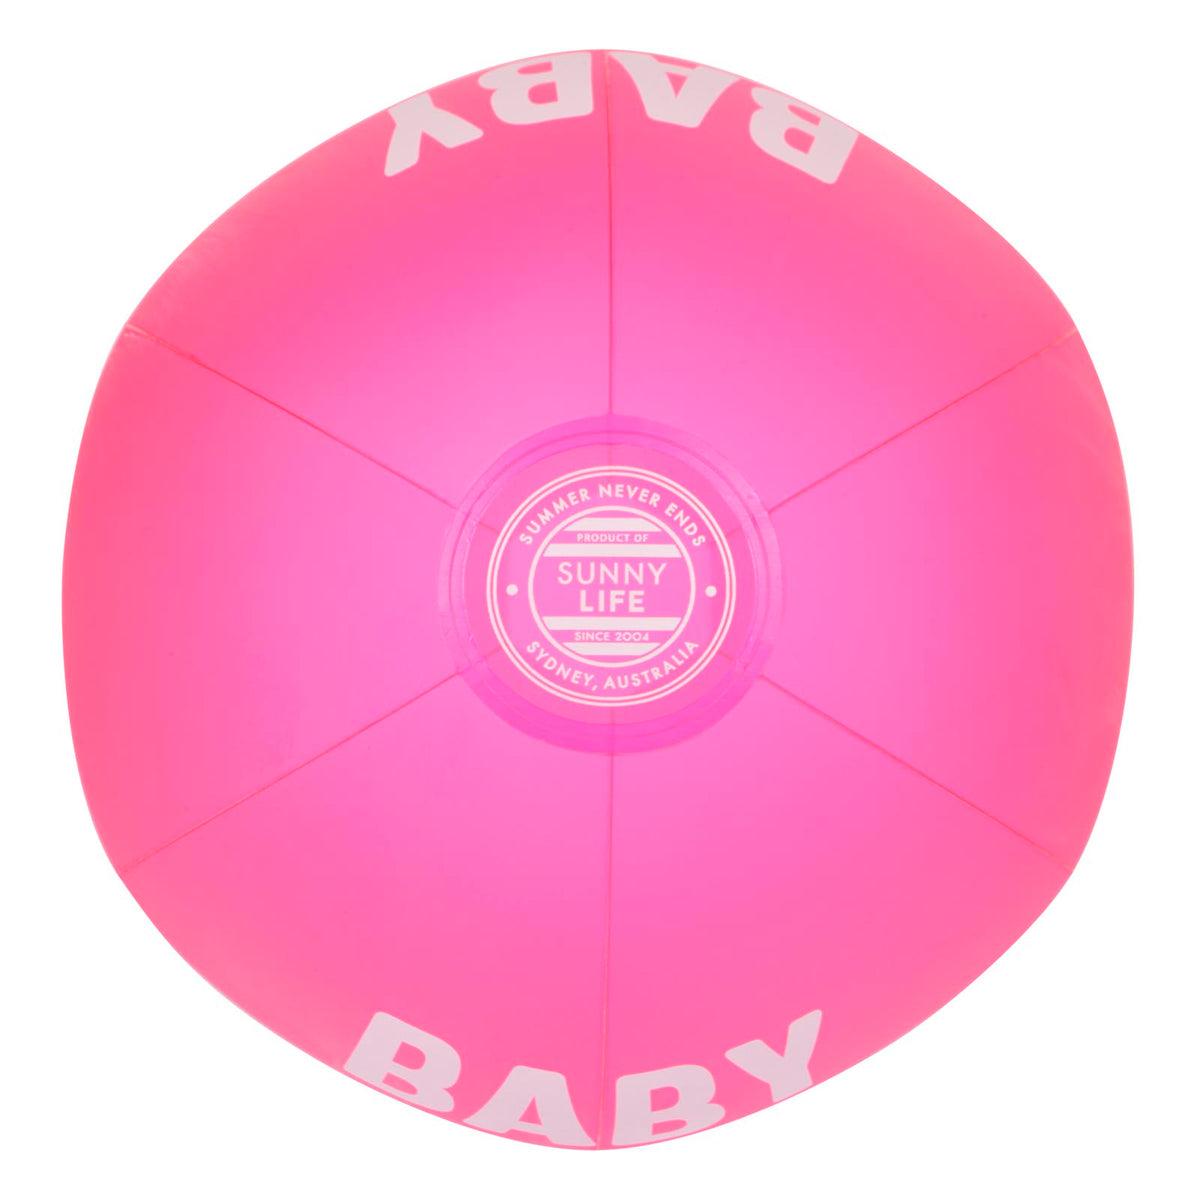 Sunnylife | Inflatable Beach Ball | Neon Pink